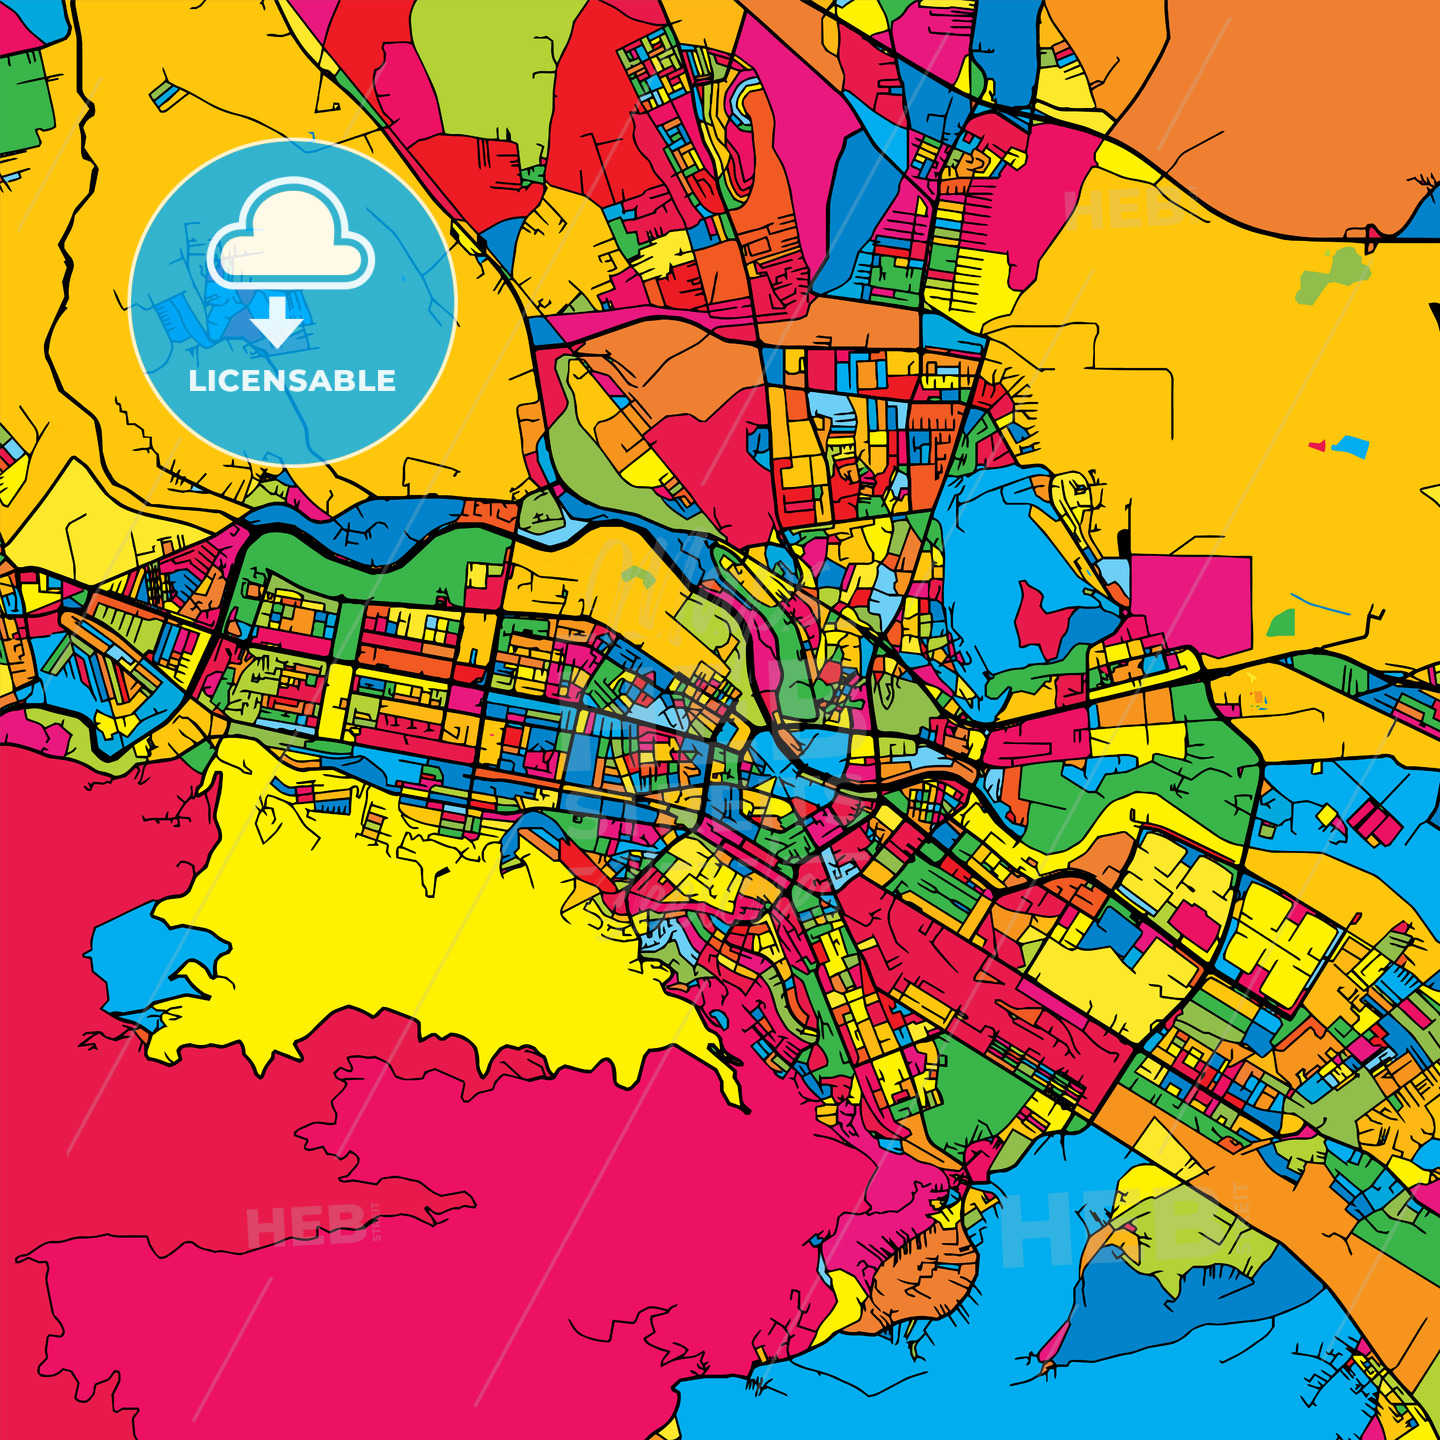 Skopje Macedonia Colorful Map - HEBSTREIT's Sketches